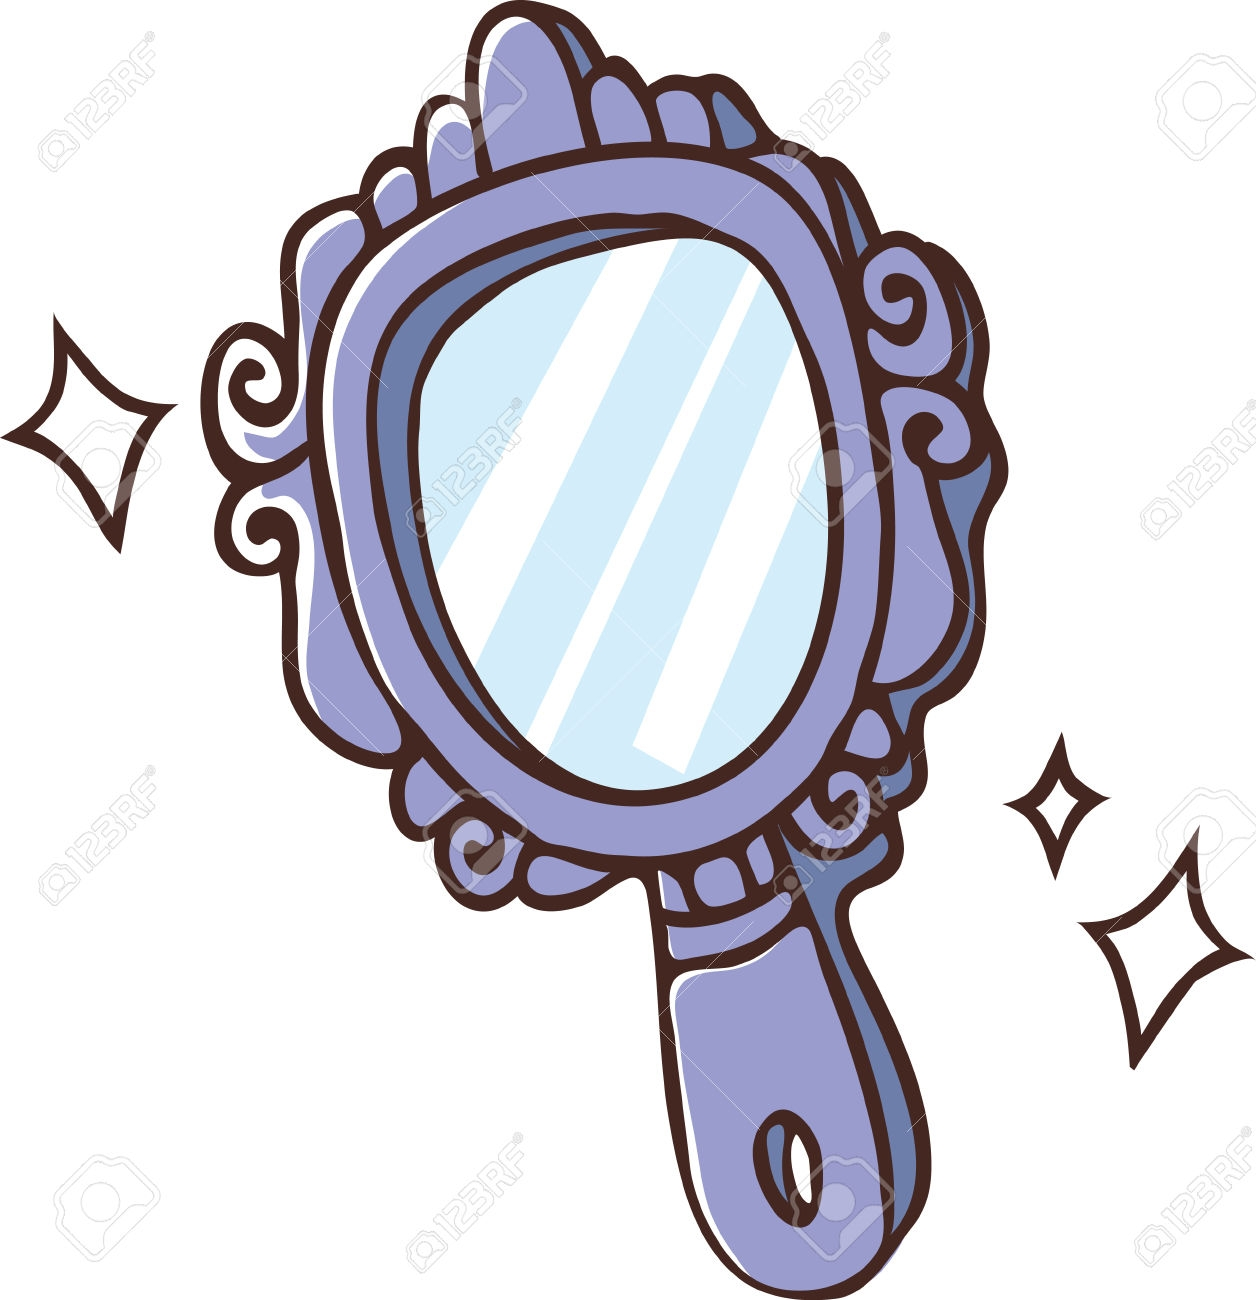 Unique design digital collection. Mirror clipart